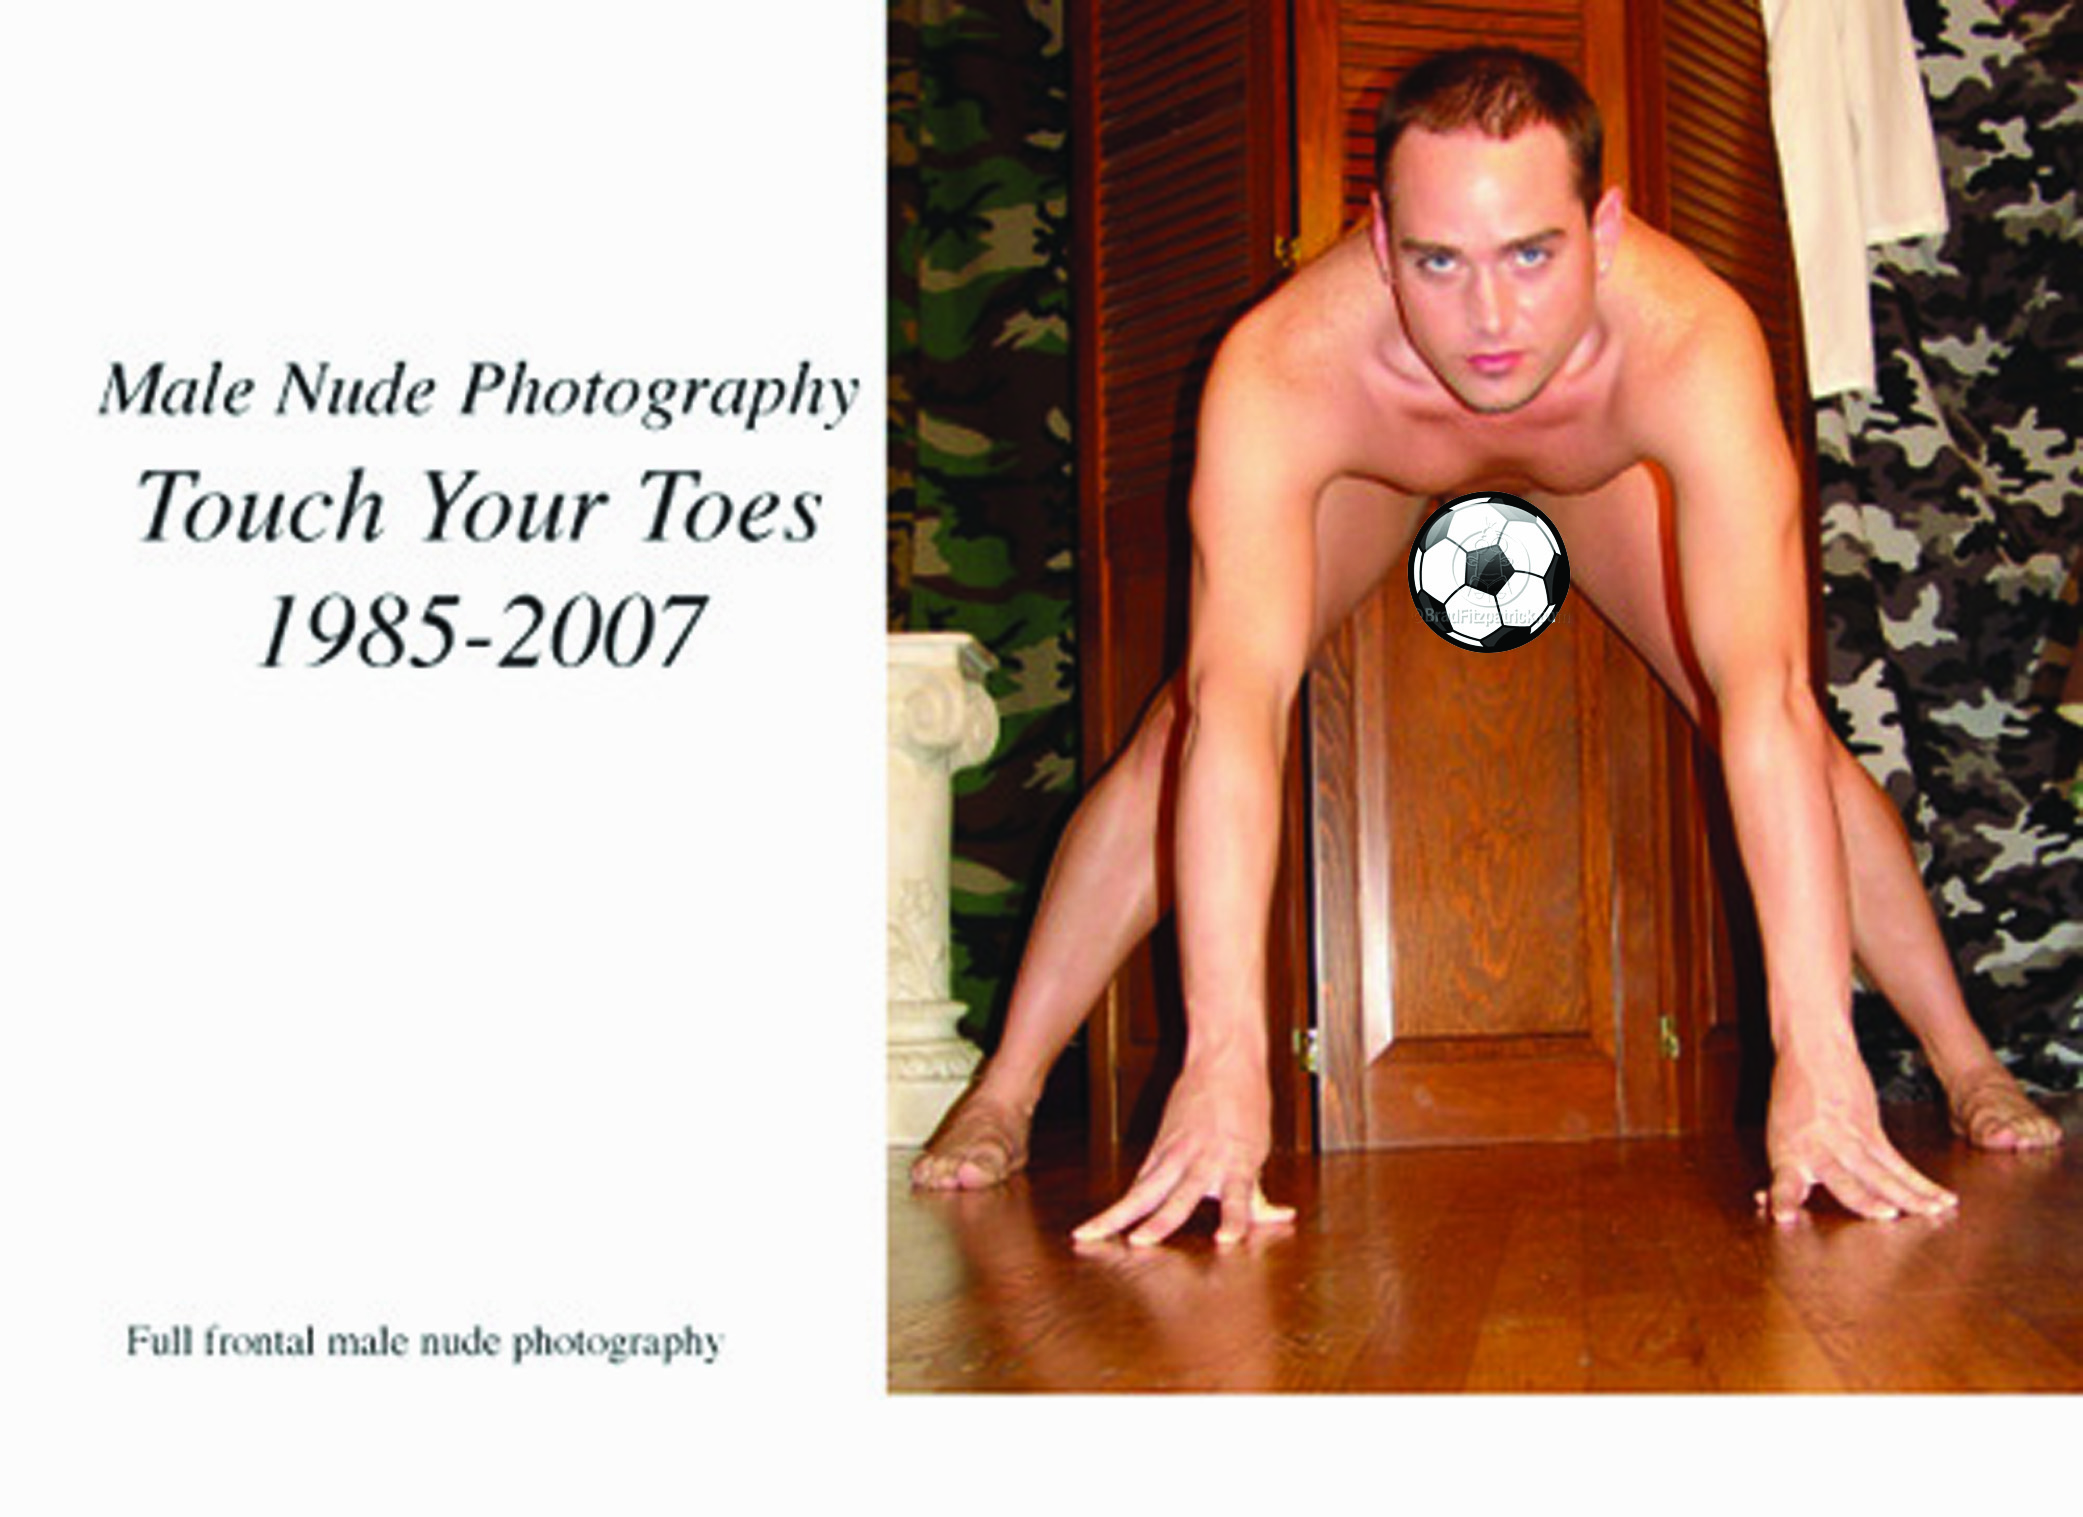 Nude Male Photo eBook Male Nude Photography- Touch Your Toes 1985-2007 9781434801791